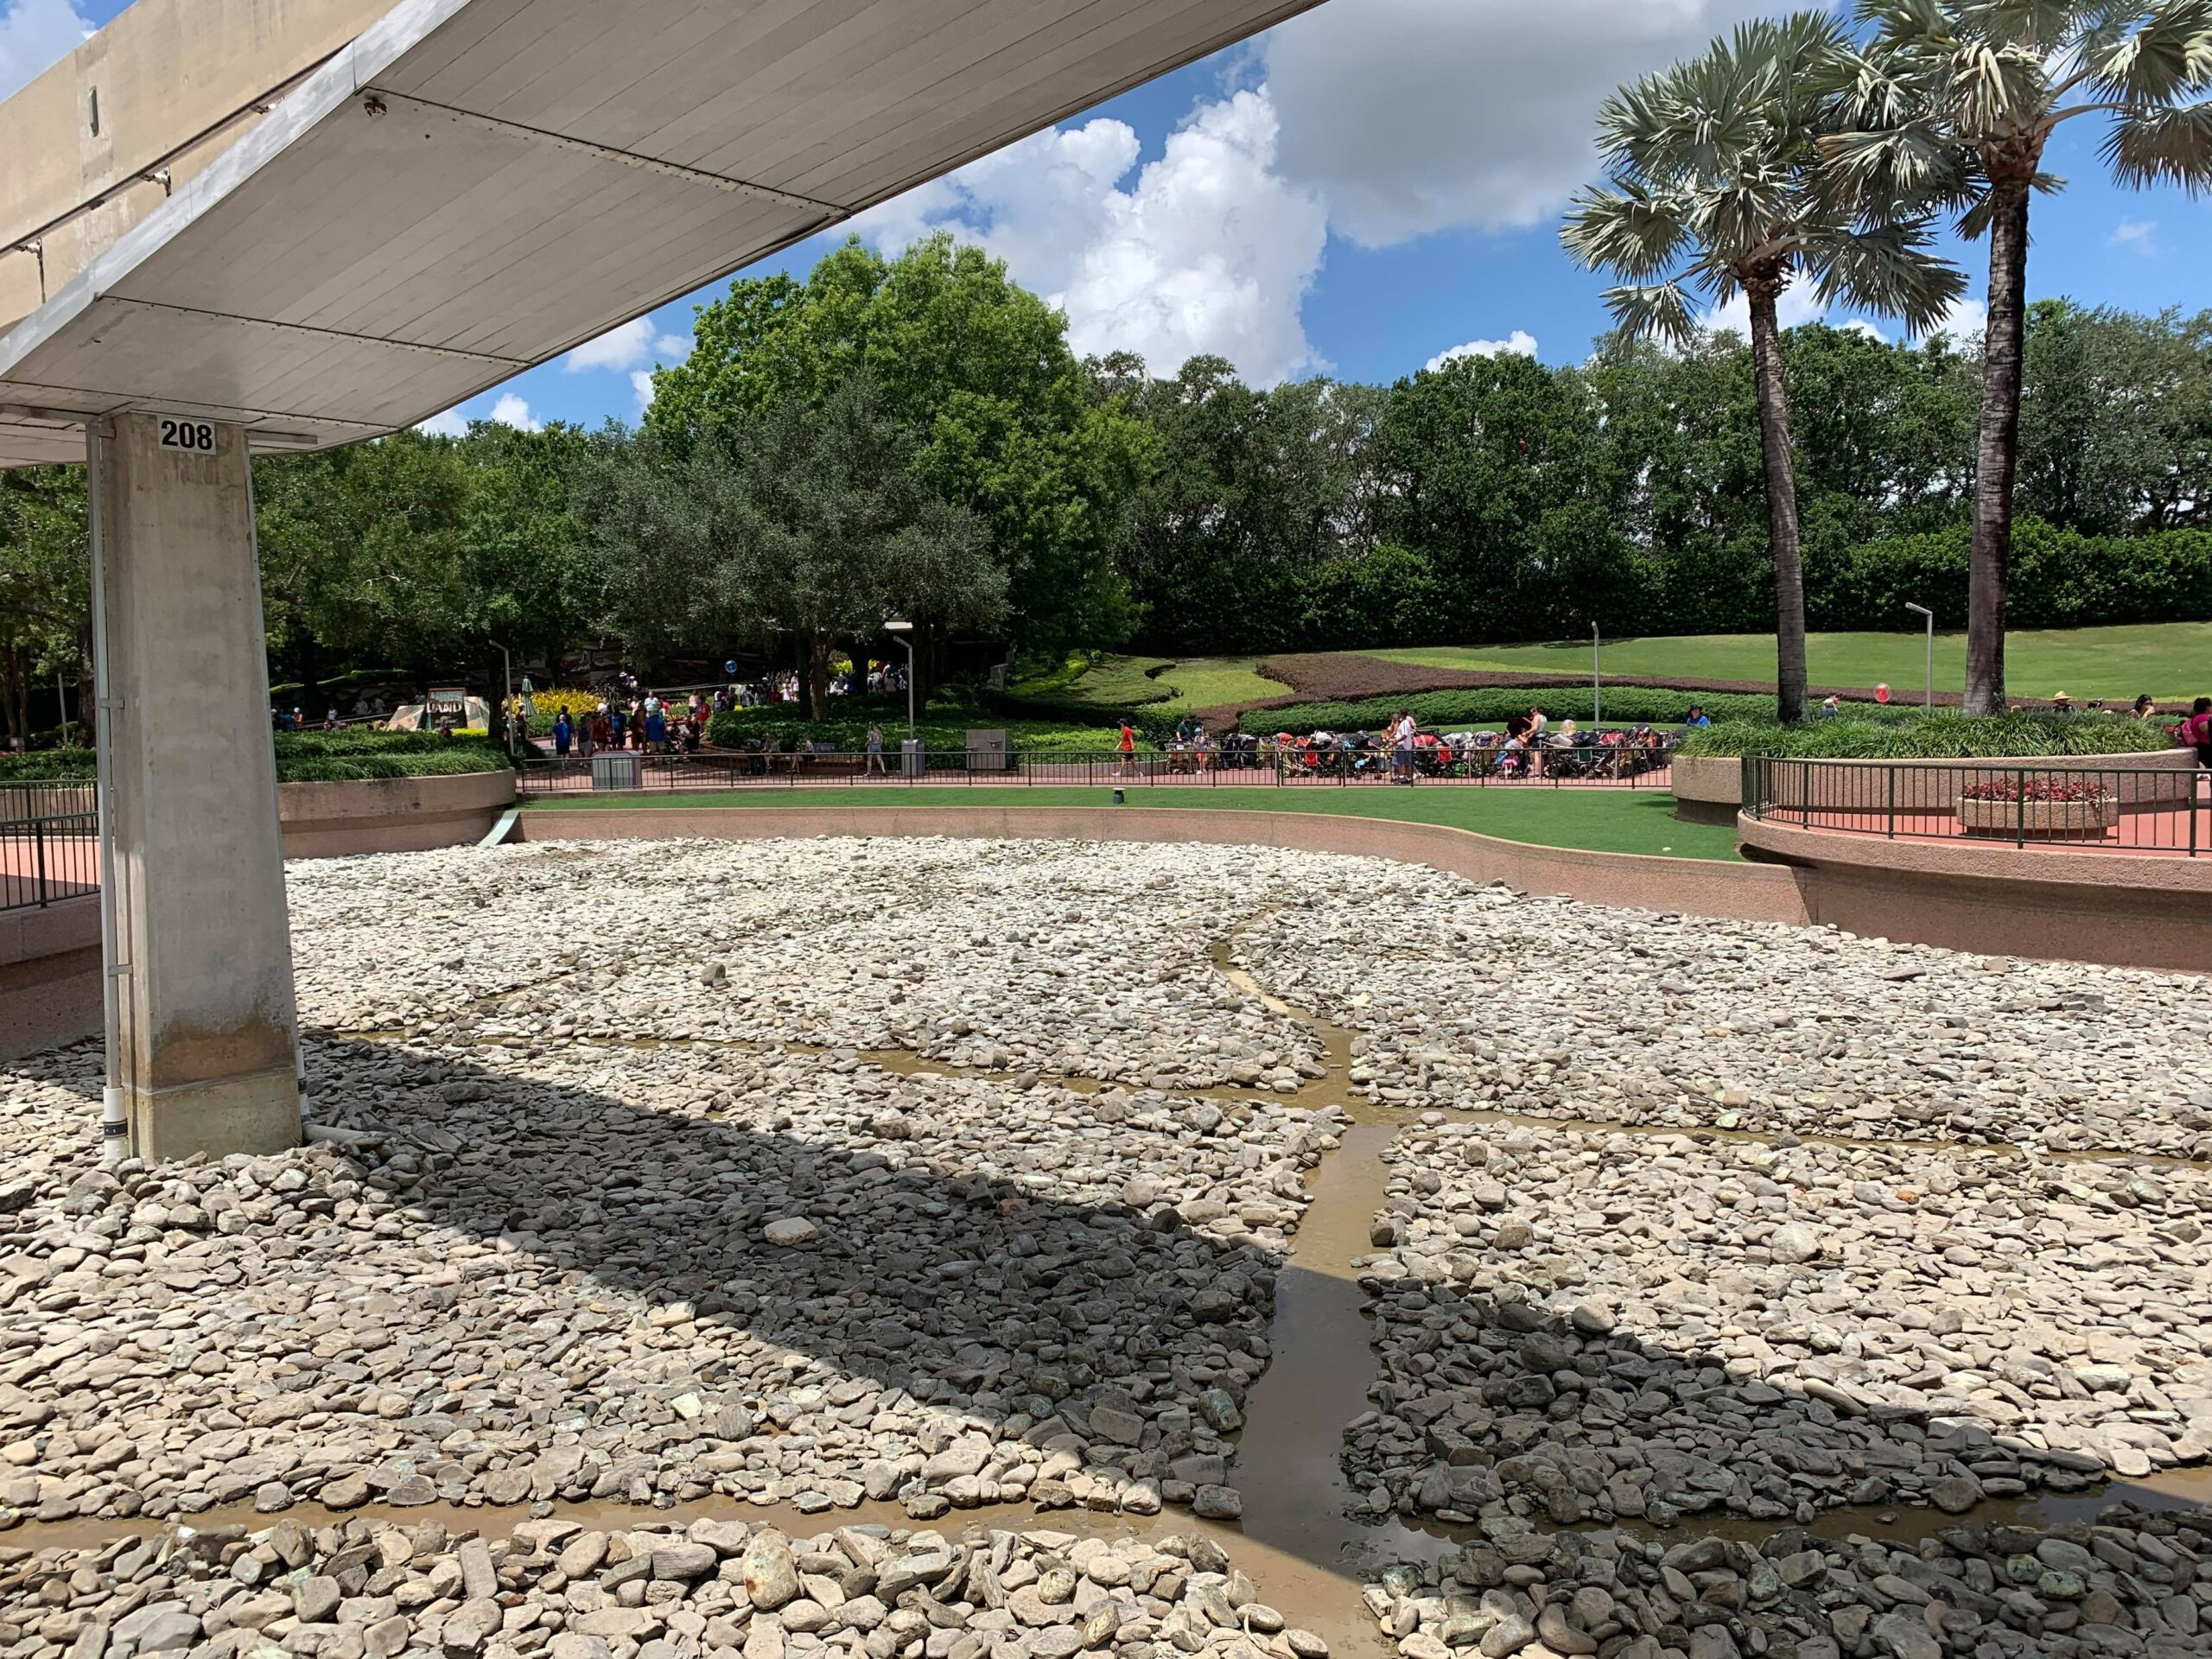 Epcot draining ponds as they prepare for Moana's Journey of Water 2